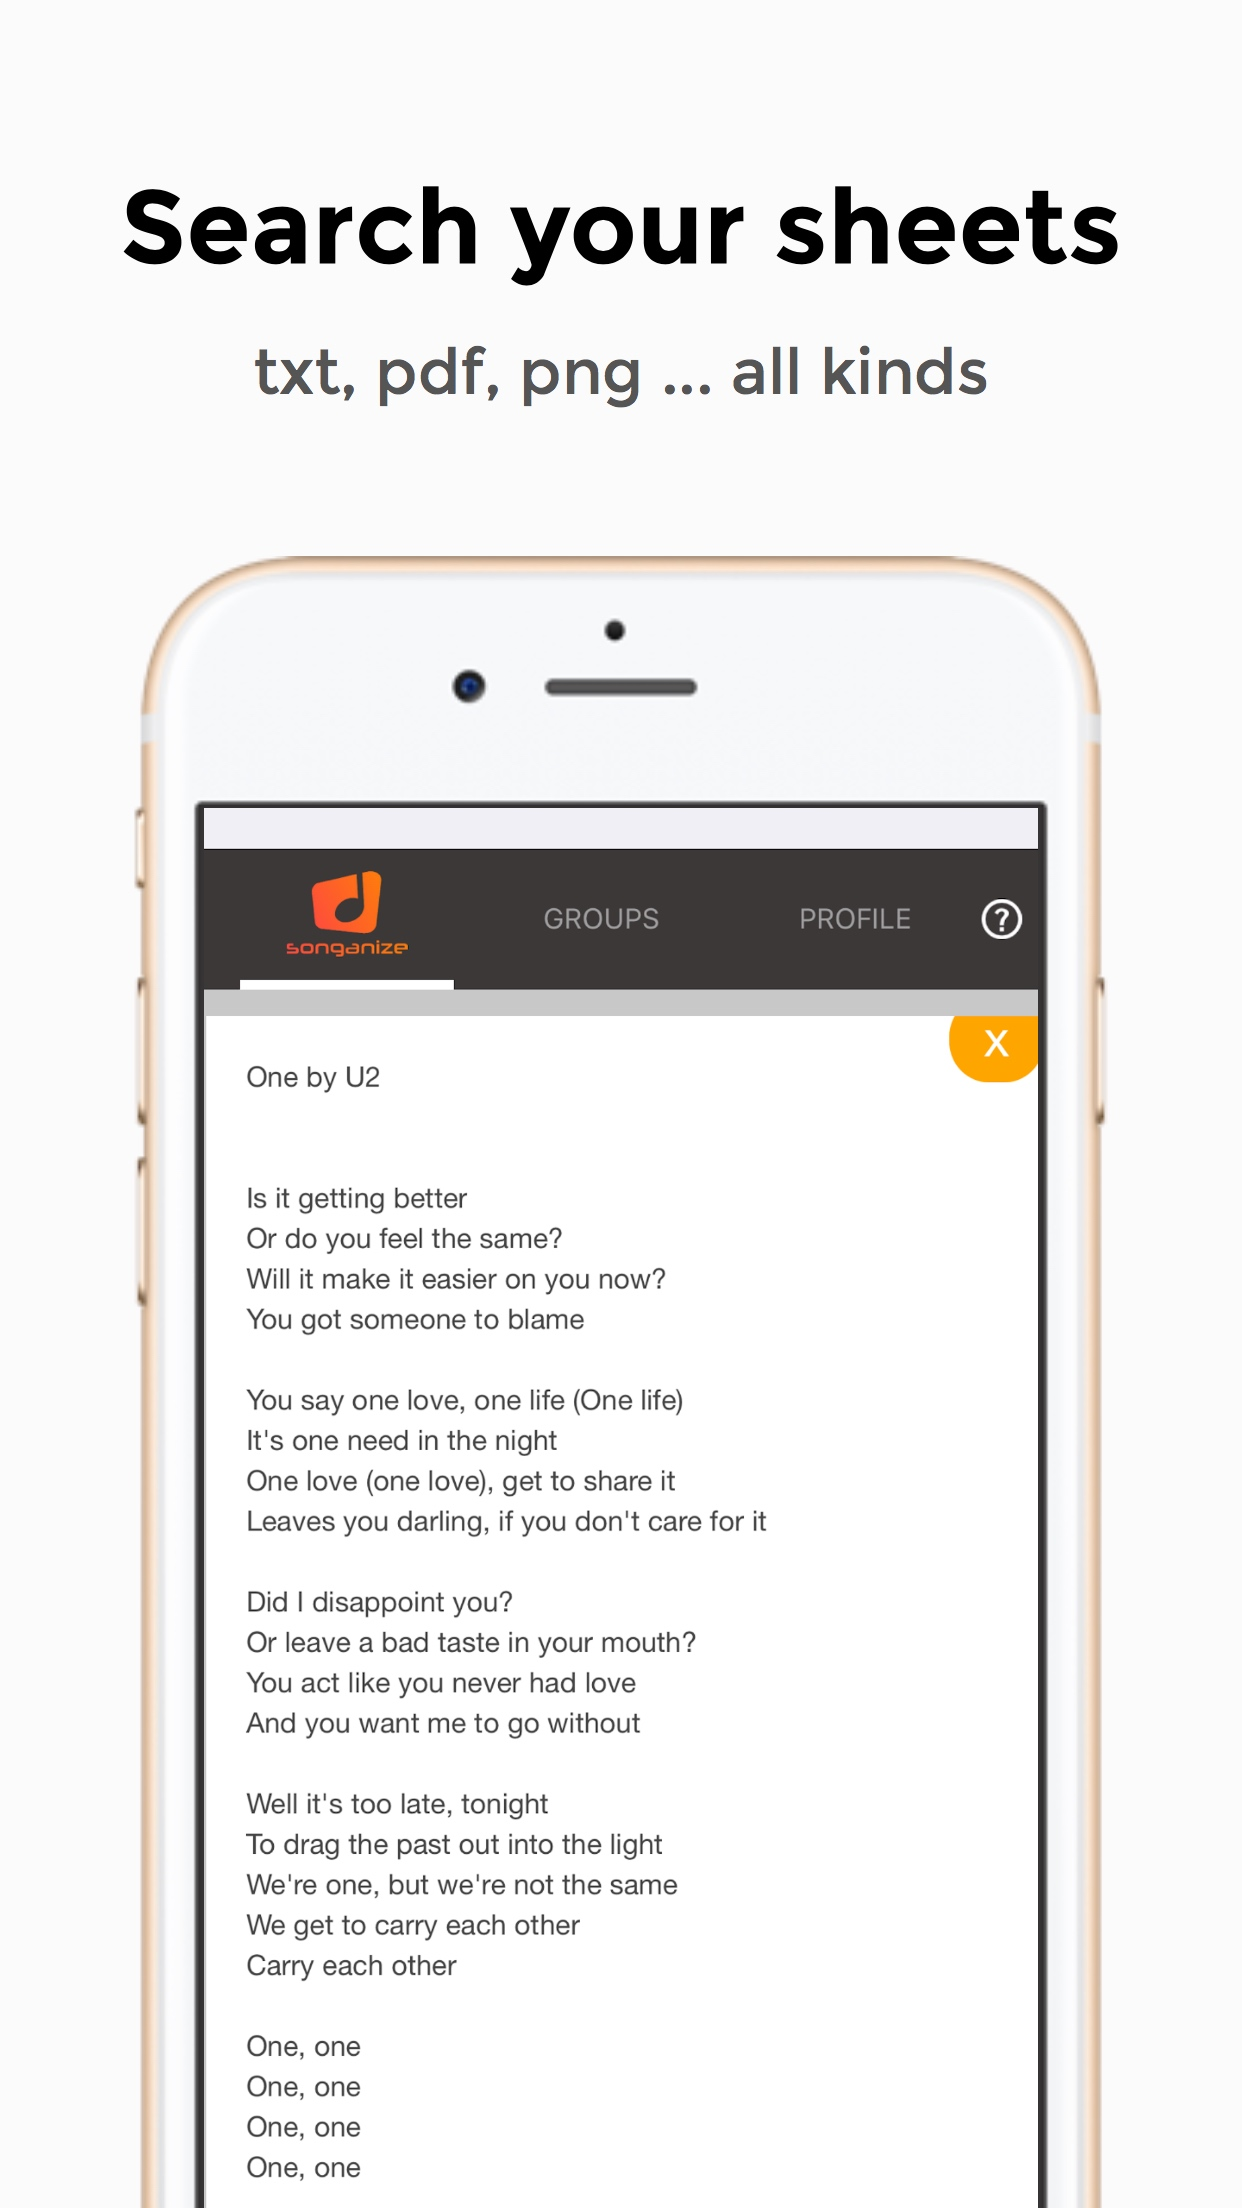 Open song lyrics or chords in the app